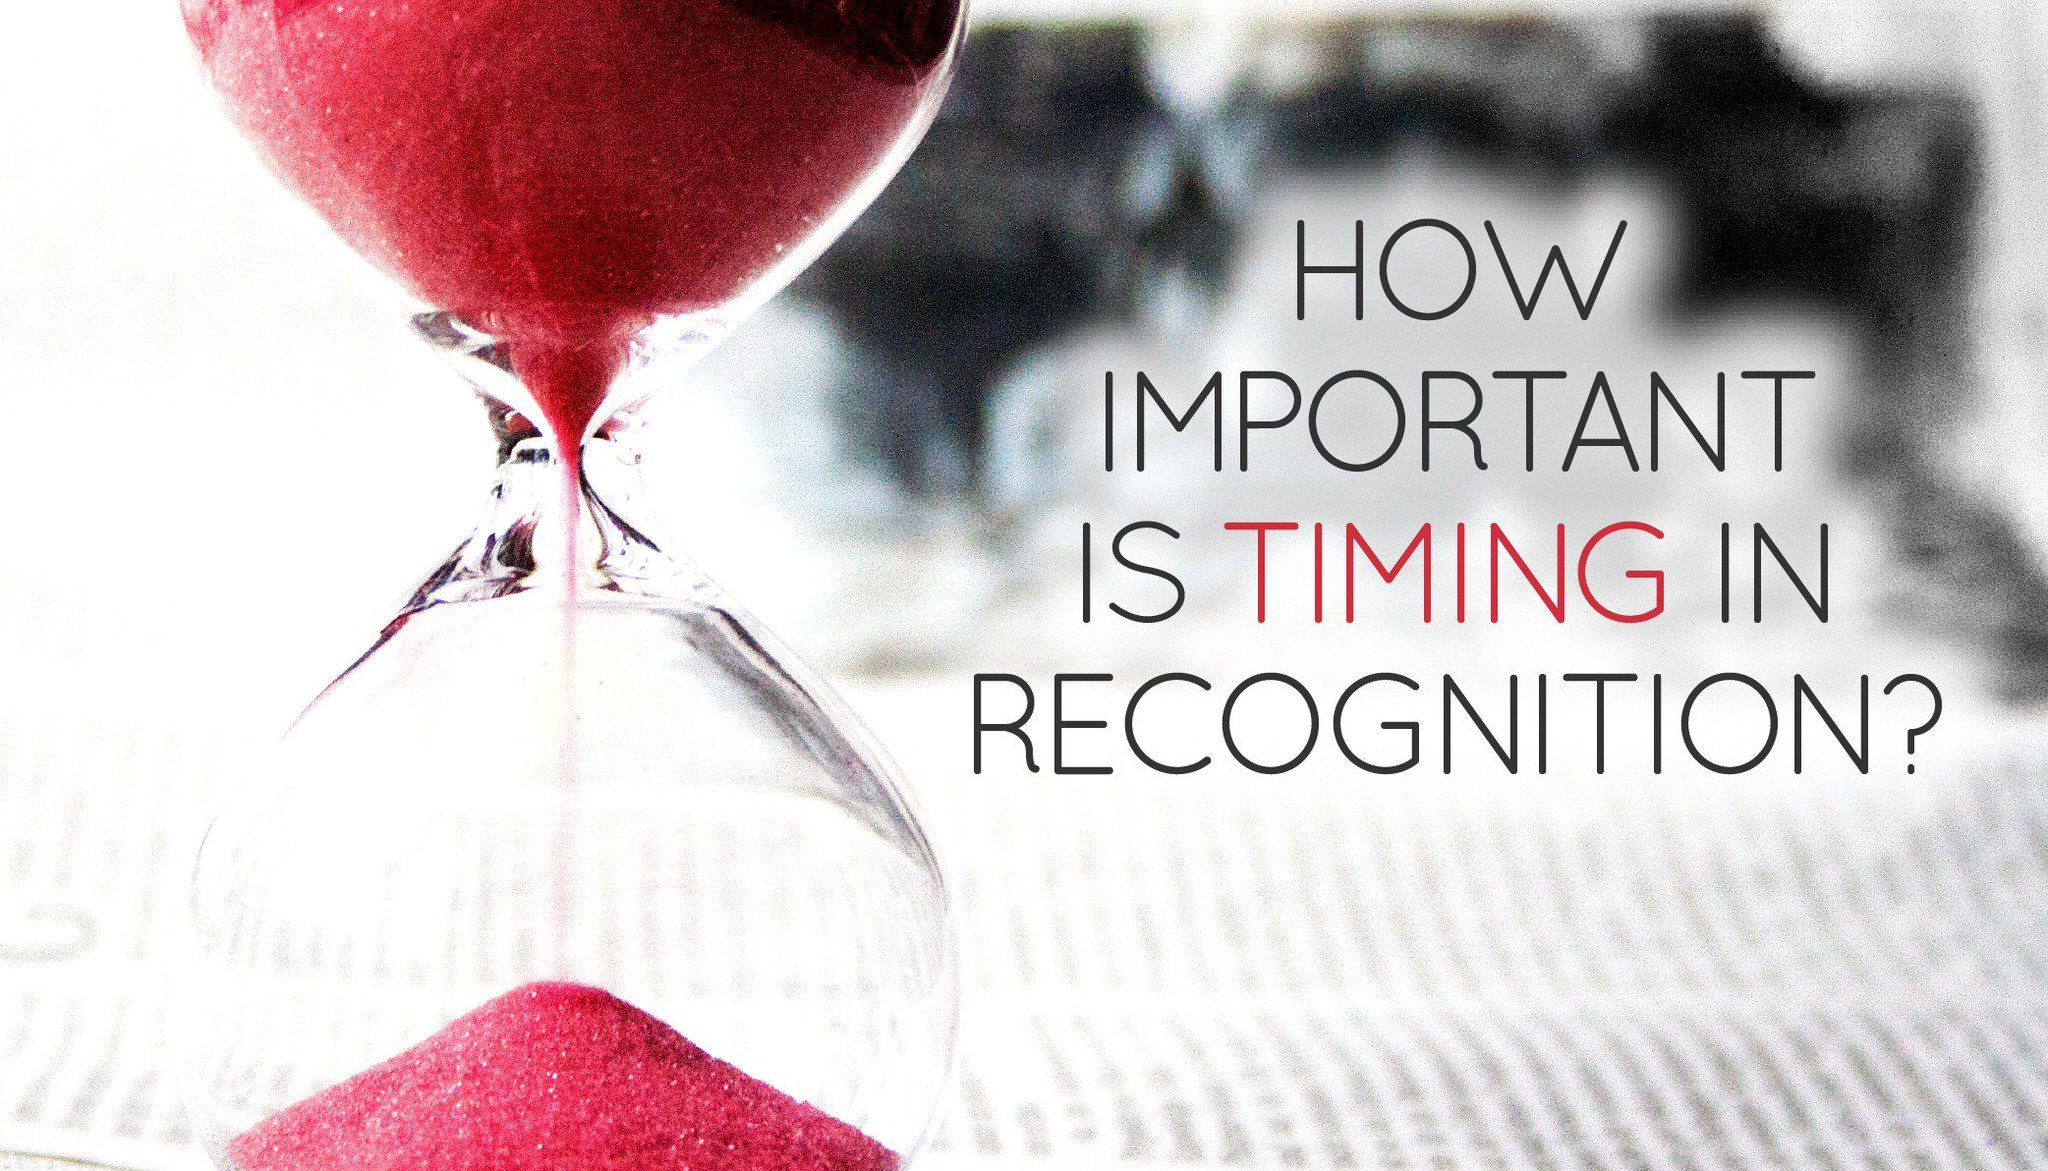 How Important is Timing in Recognition?